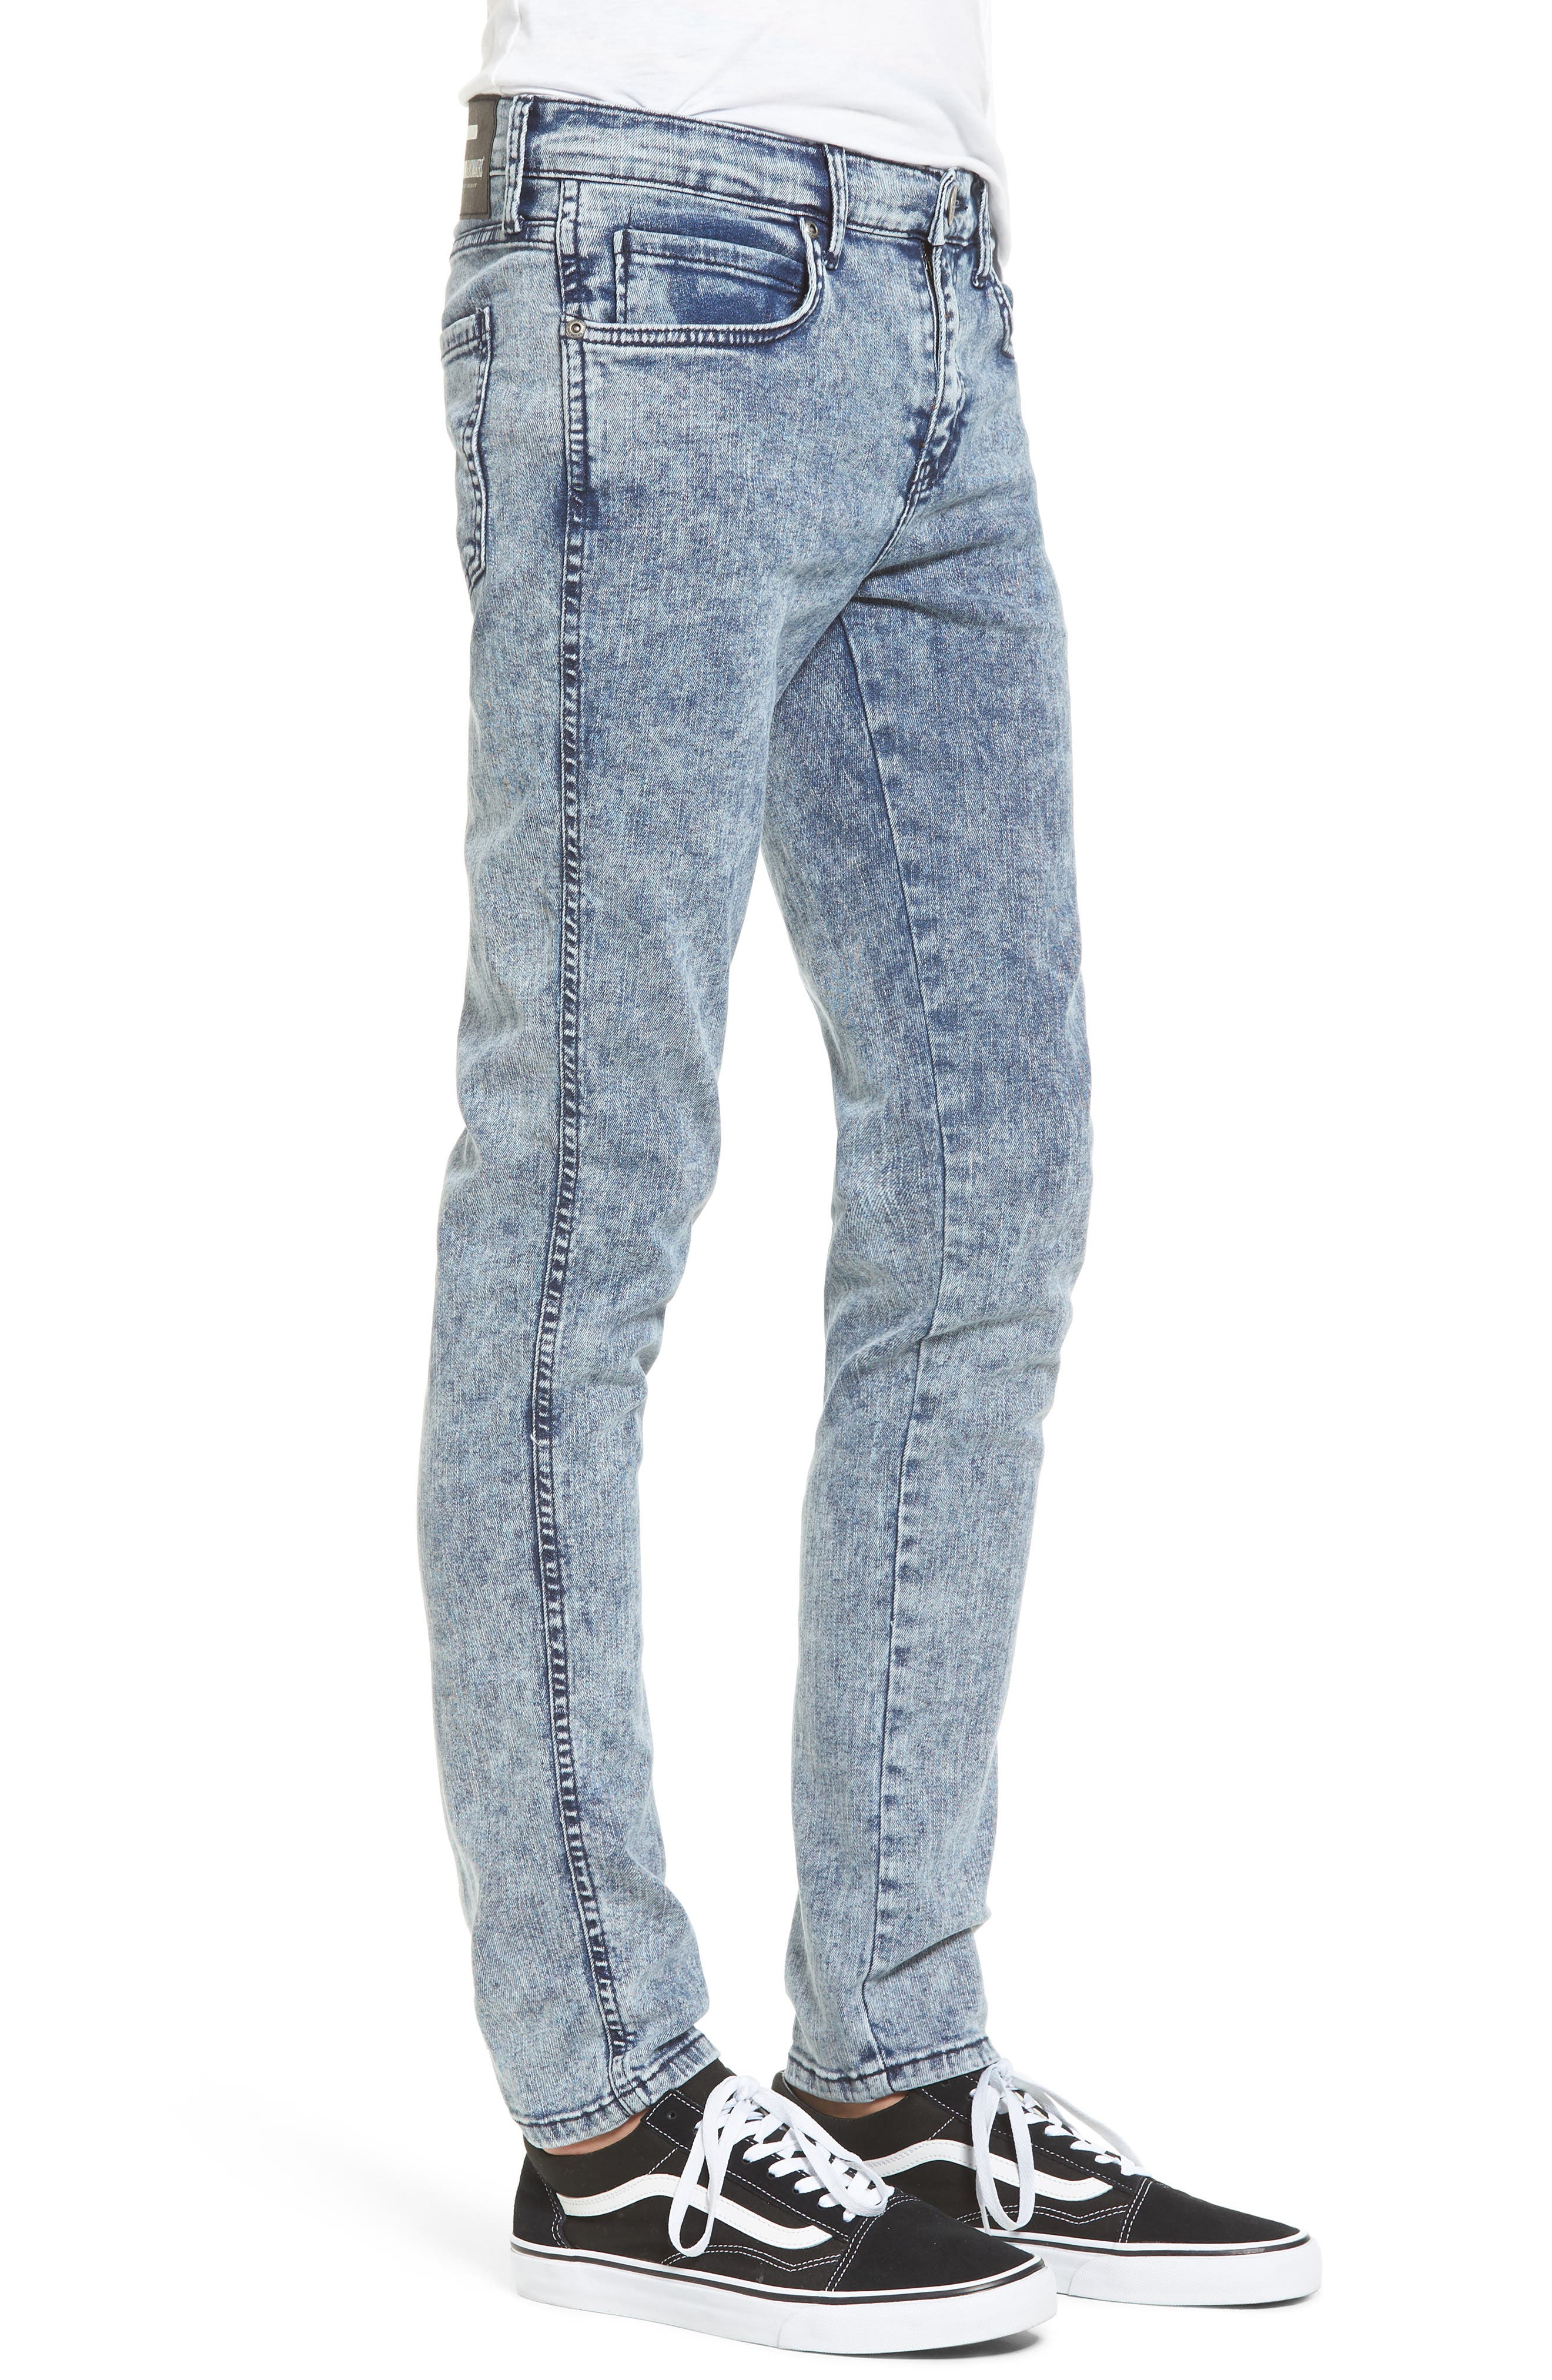 Snap Skinny Fit Jeans,                             Alternate thumbnail 3, color,                             400